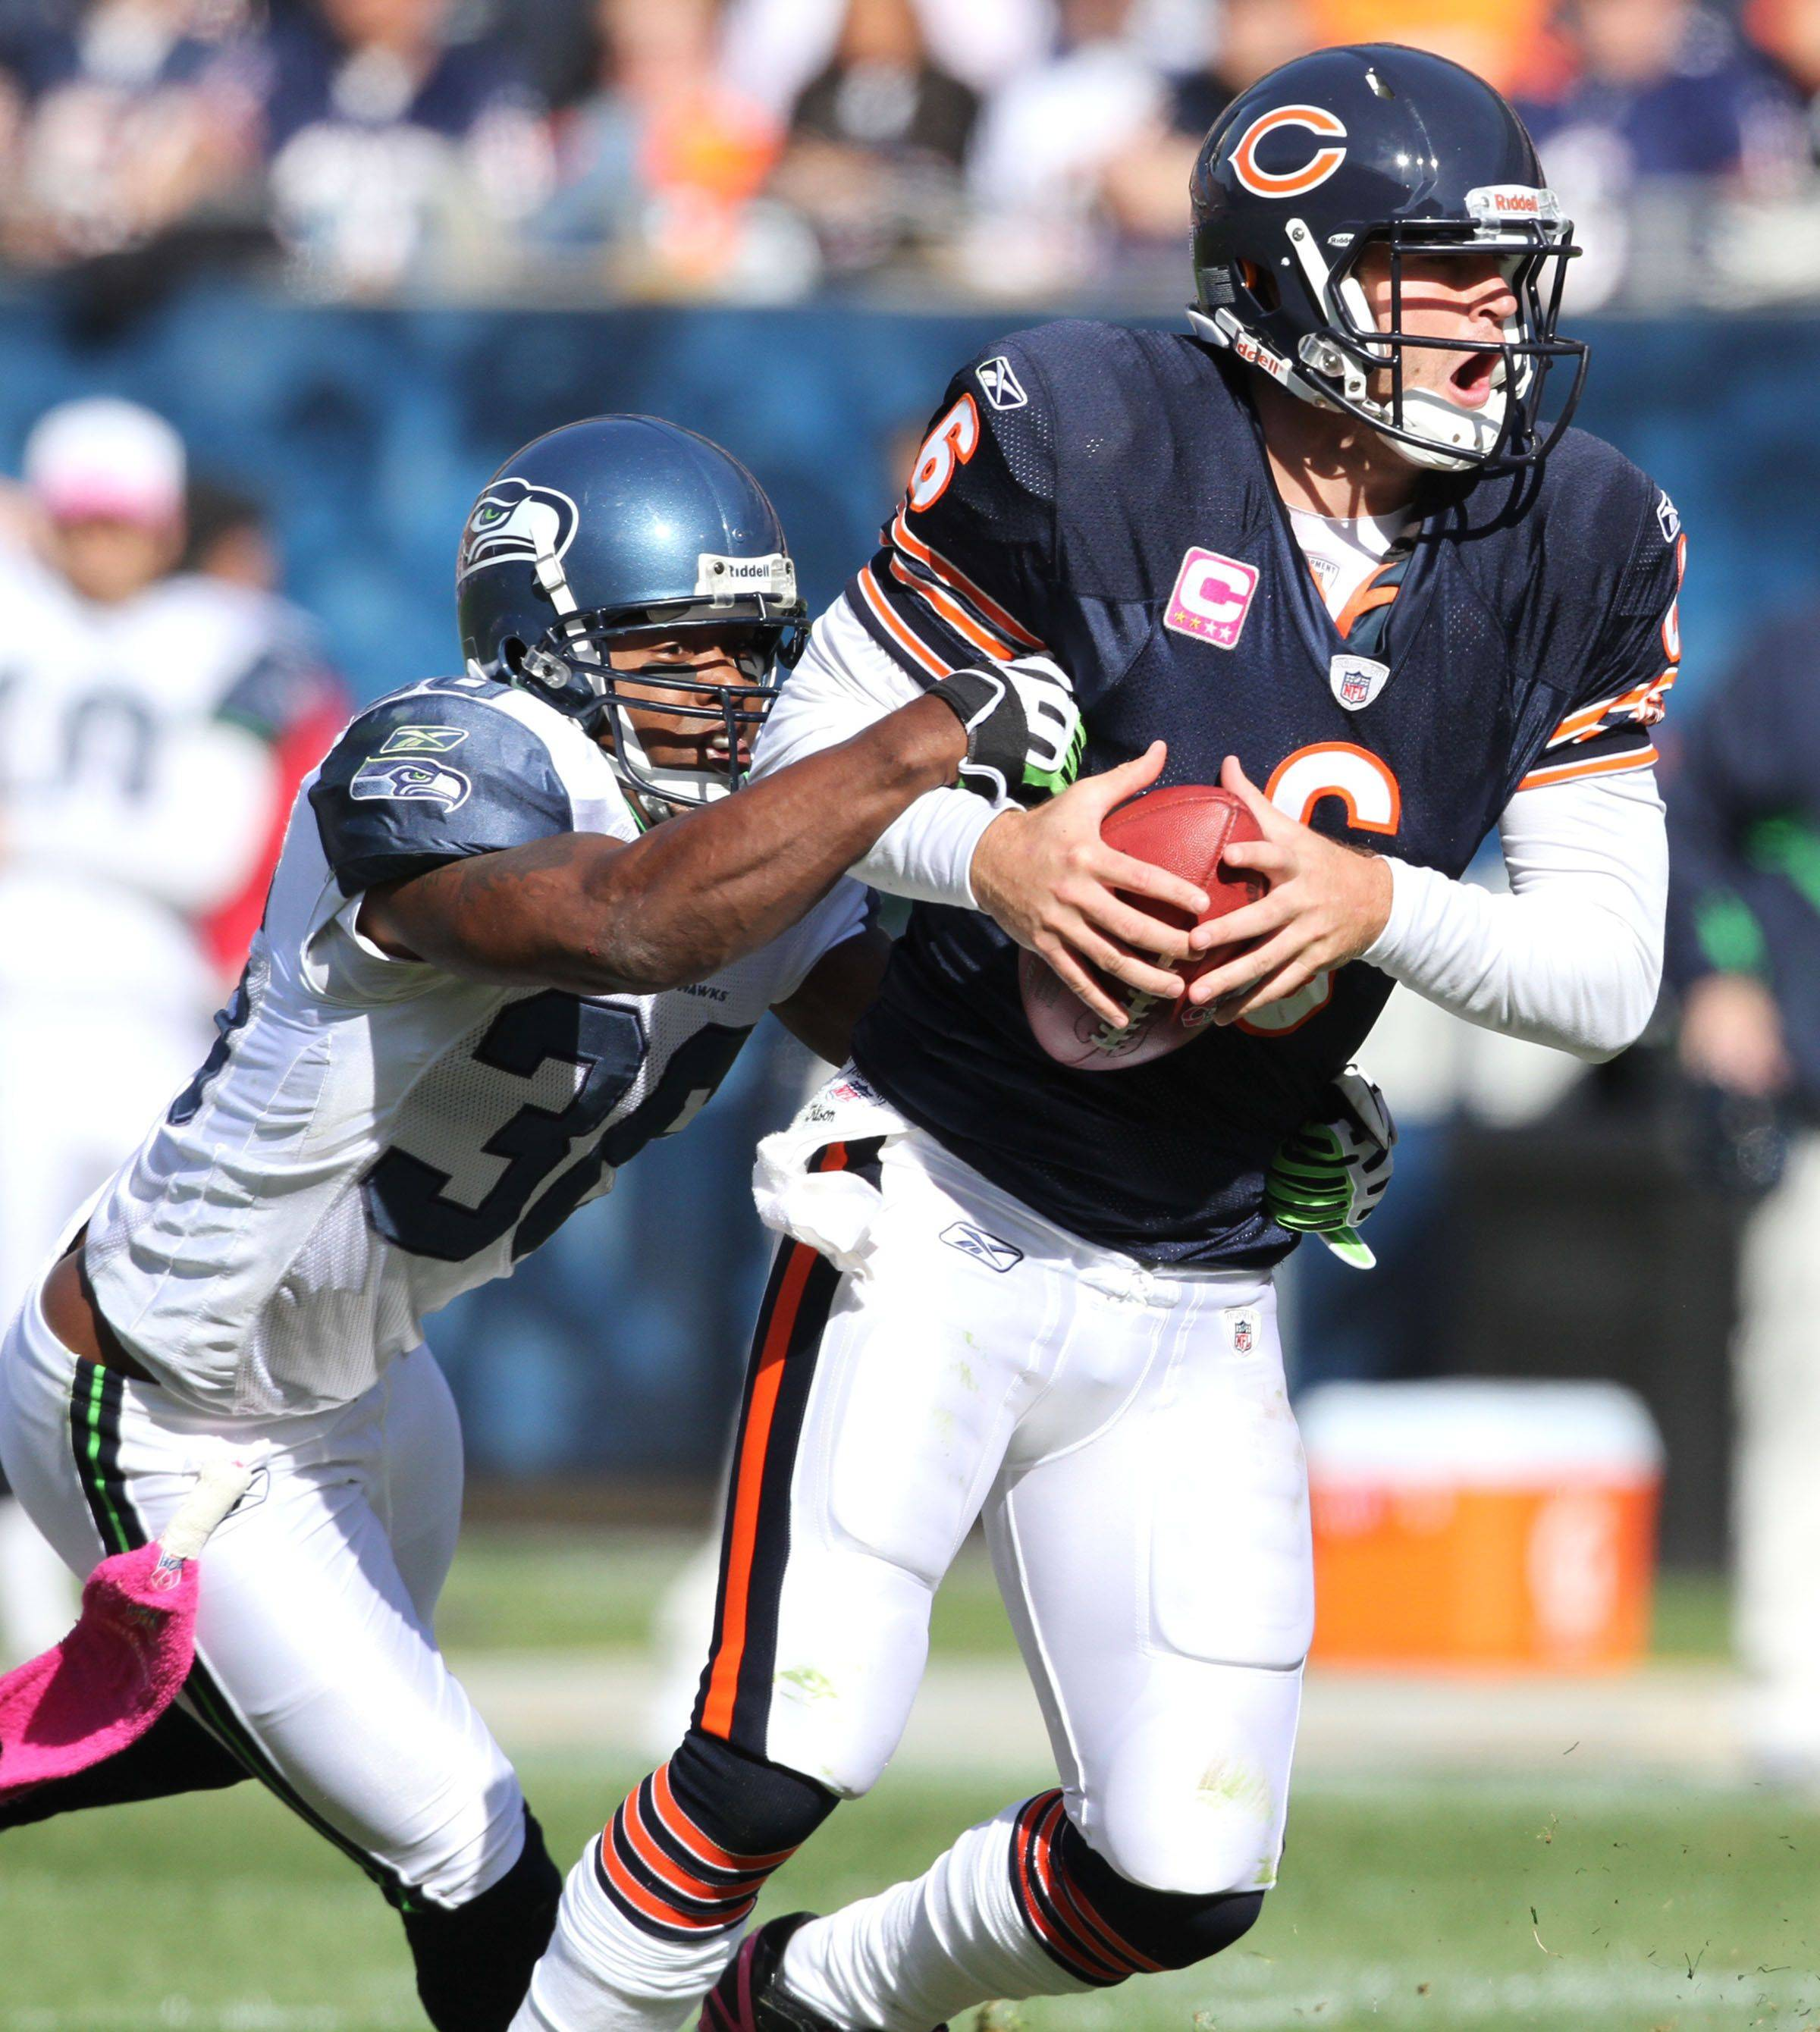 Chicago Bears' Chicago Bears quarterback Jay Cutler is sacked by Seattle Seahawks' safety Lawyer Milloy in the second half.